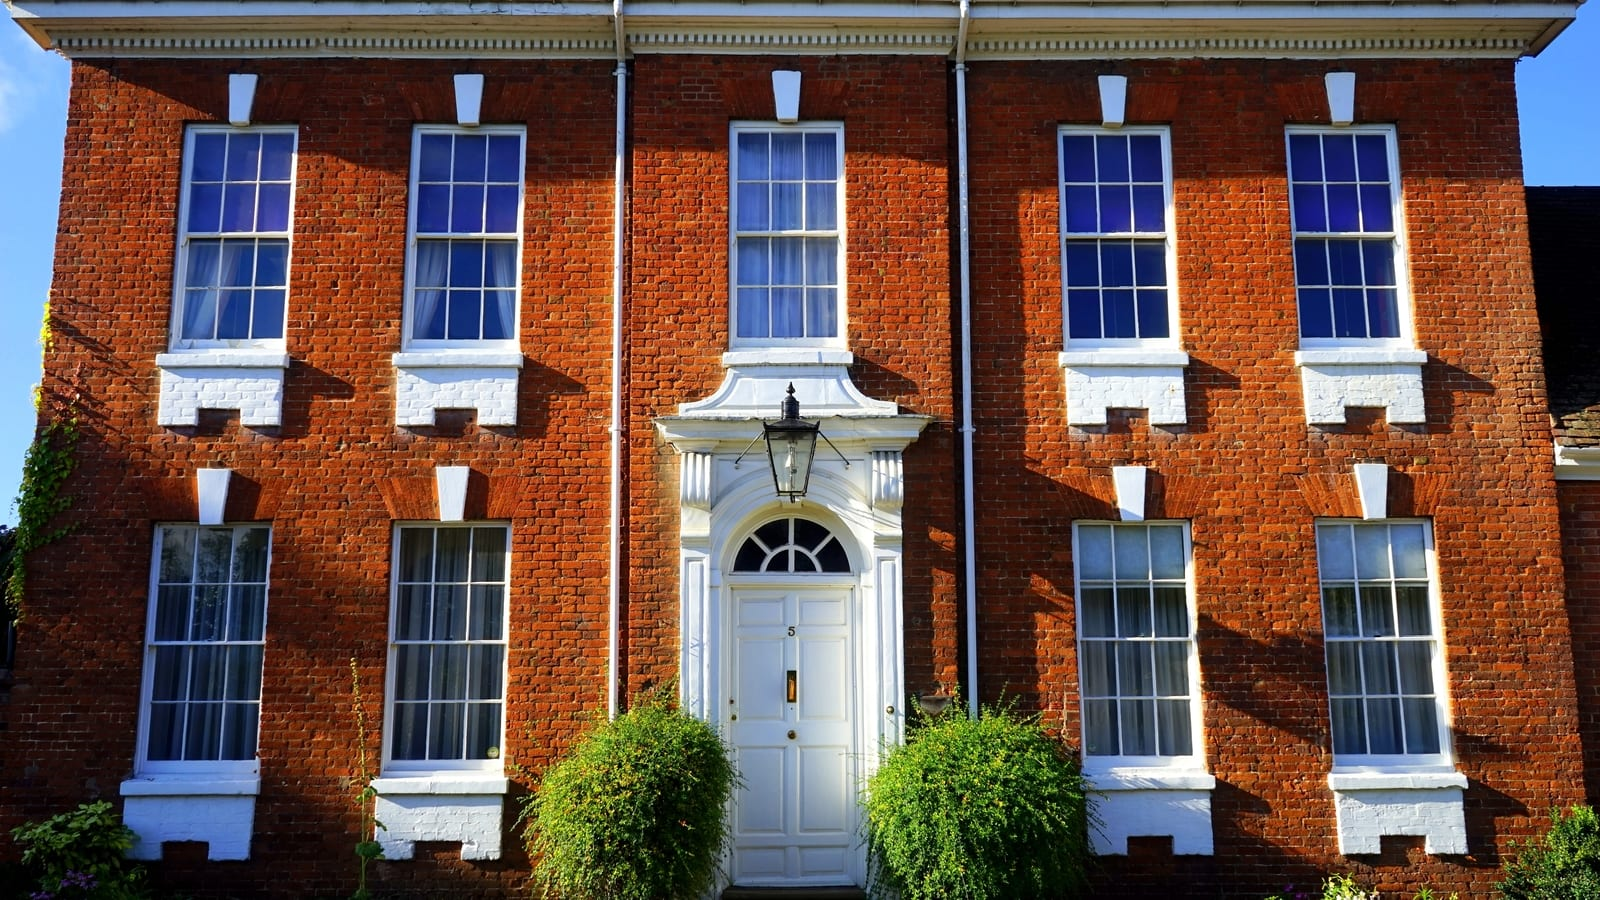 All about entrance doors